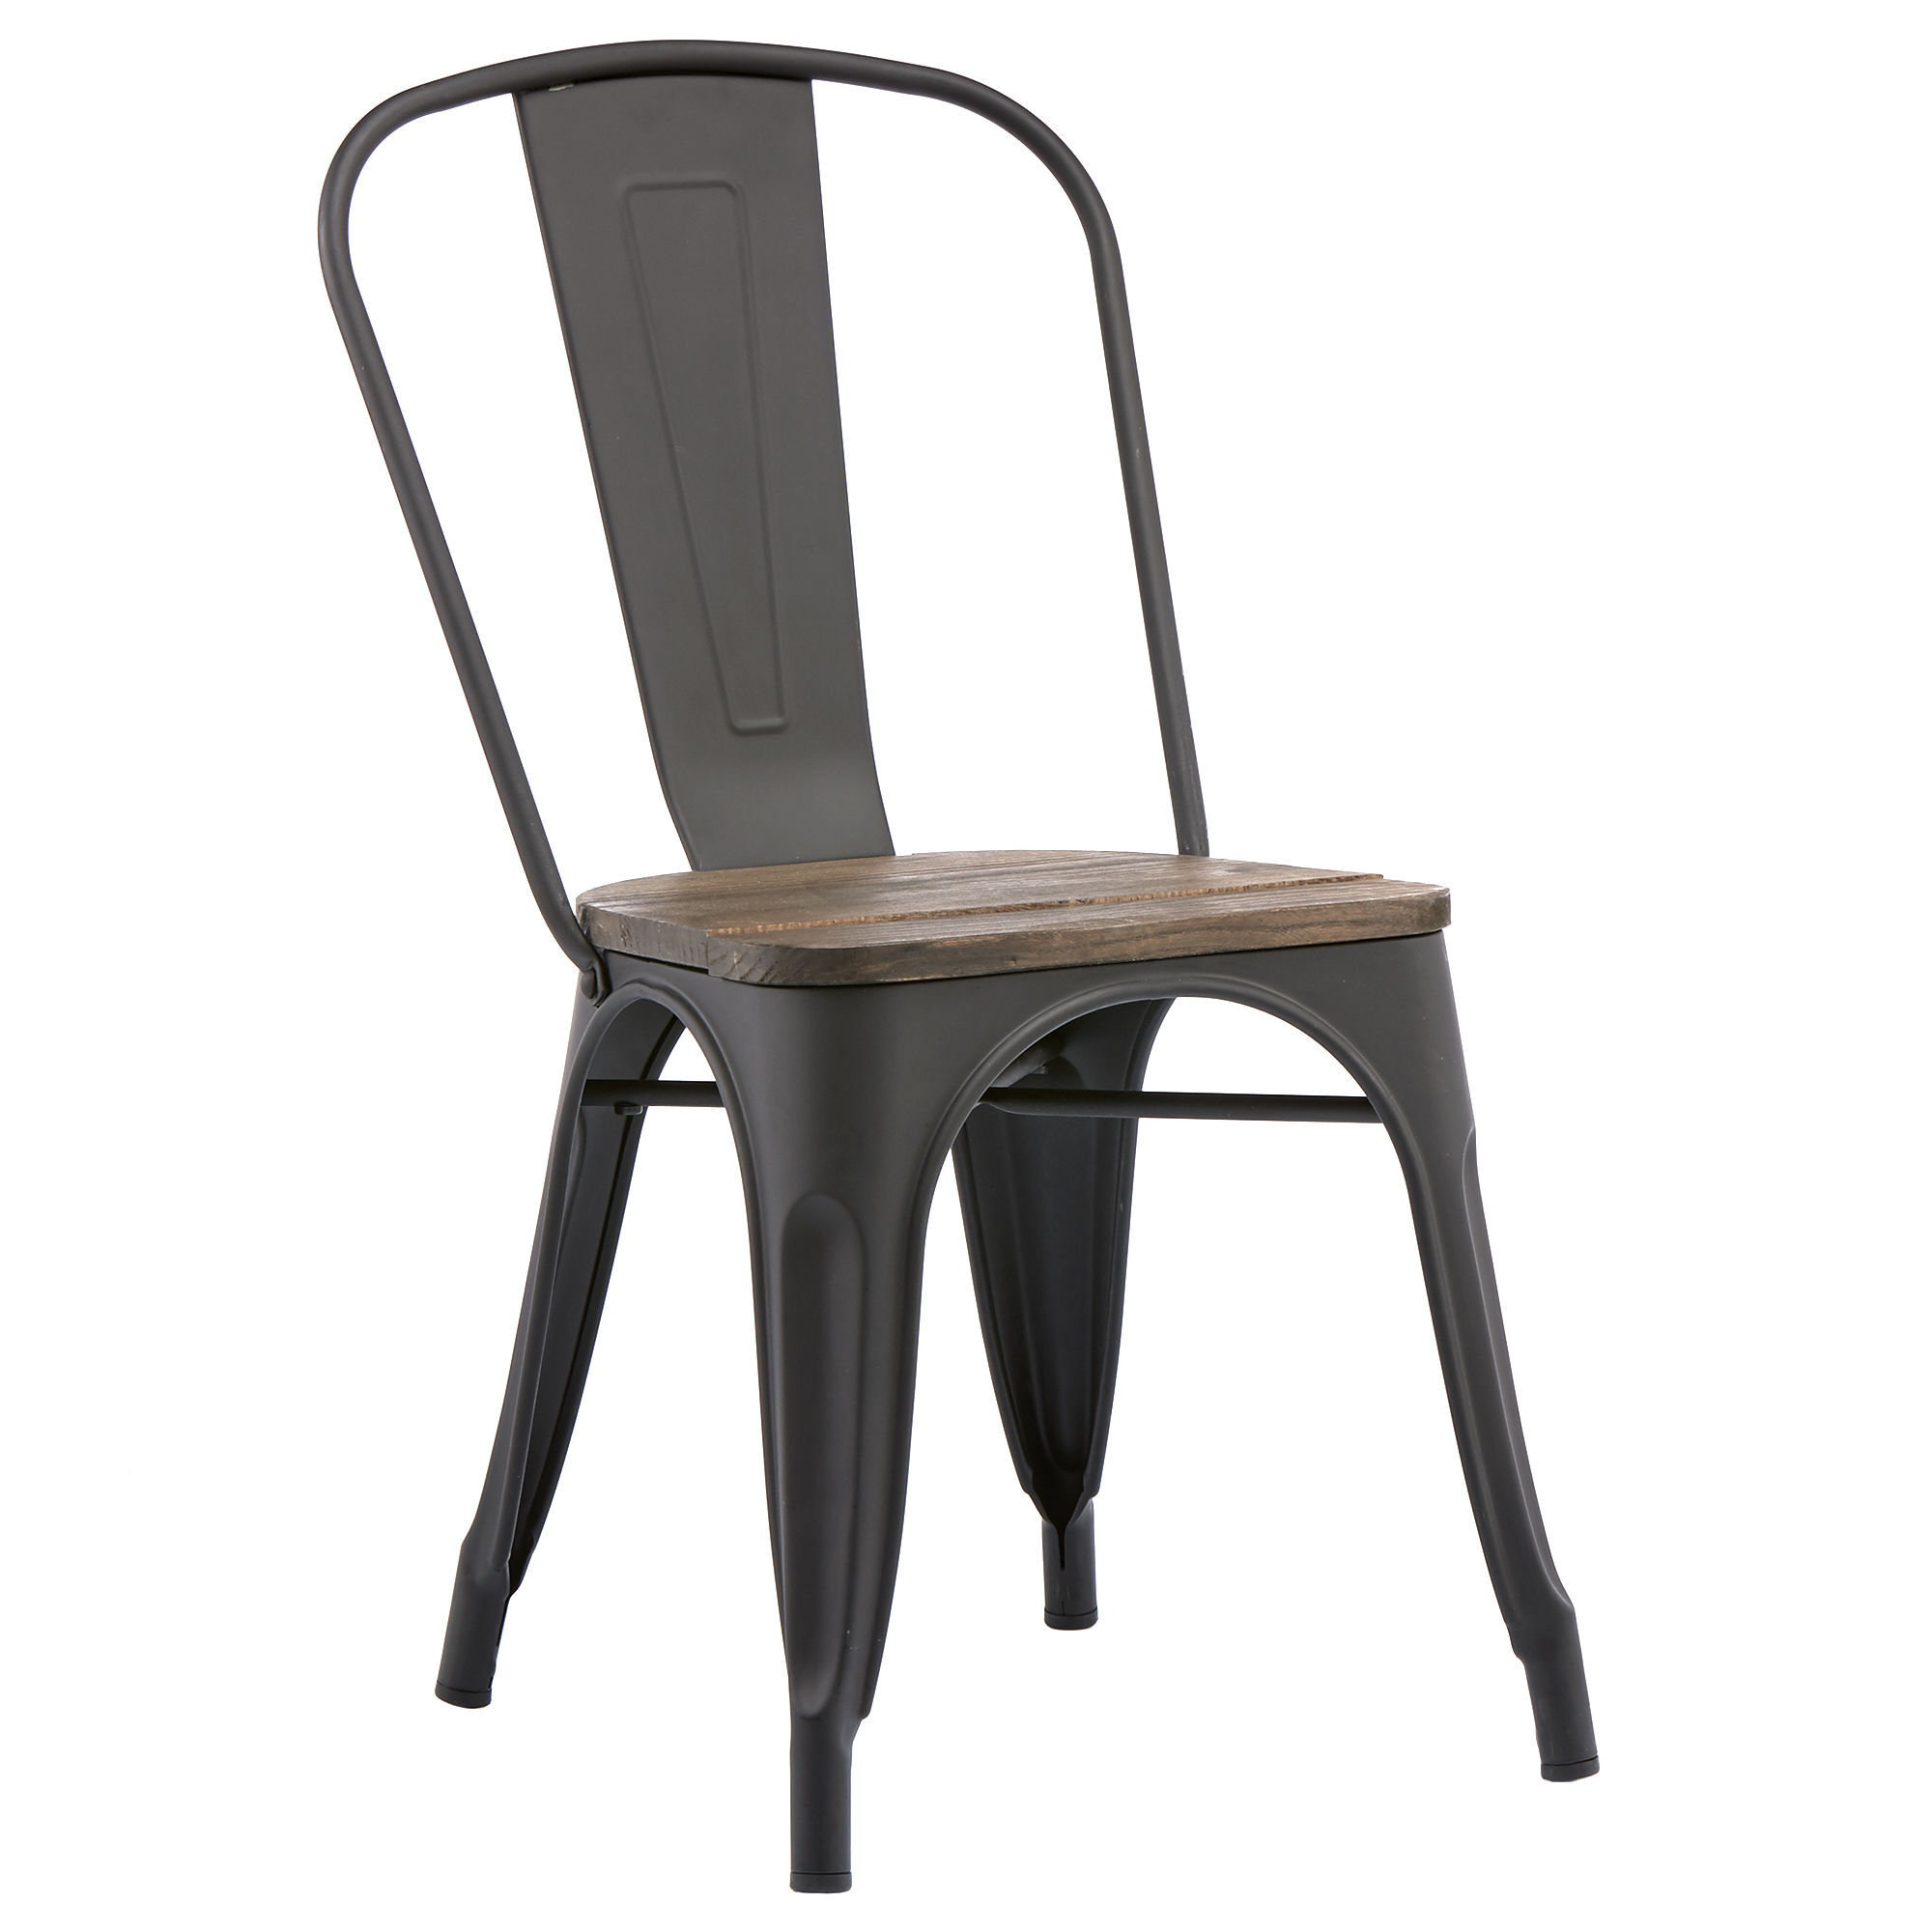 225 & Solid Elm Wood and Metal Dining Chair